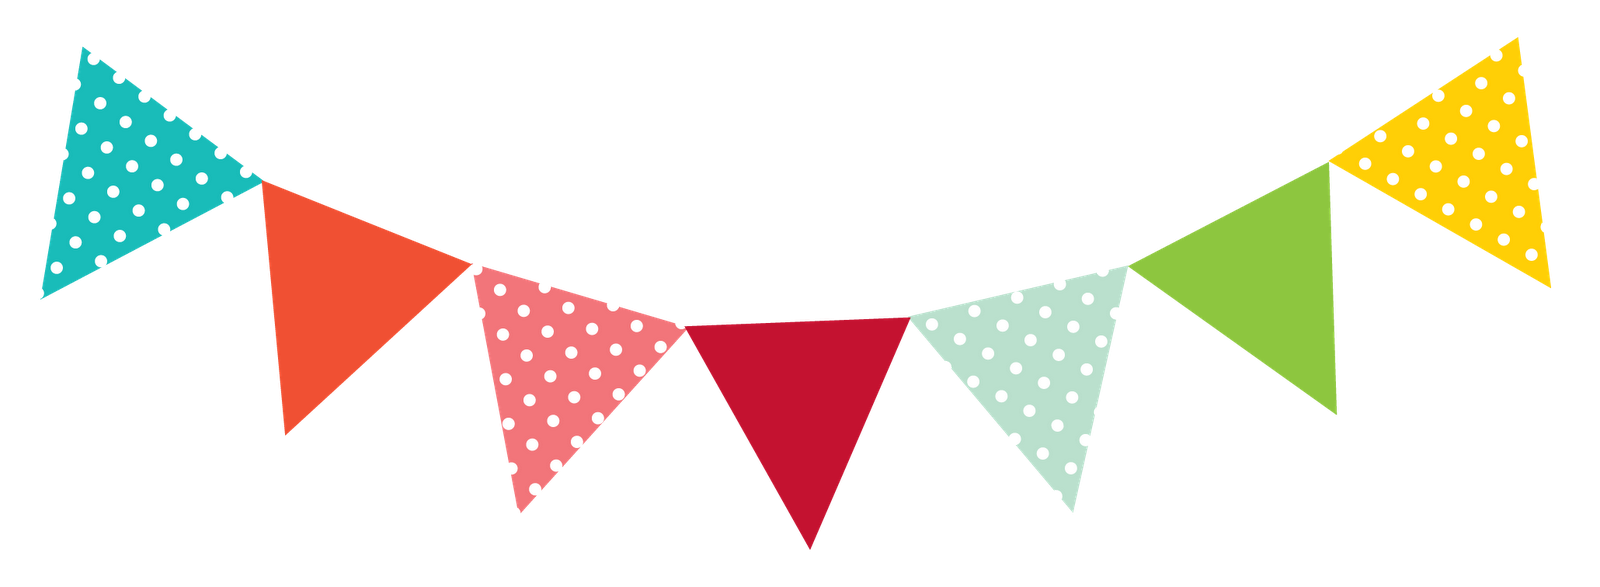 Bunting clipart #4, Download drawings